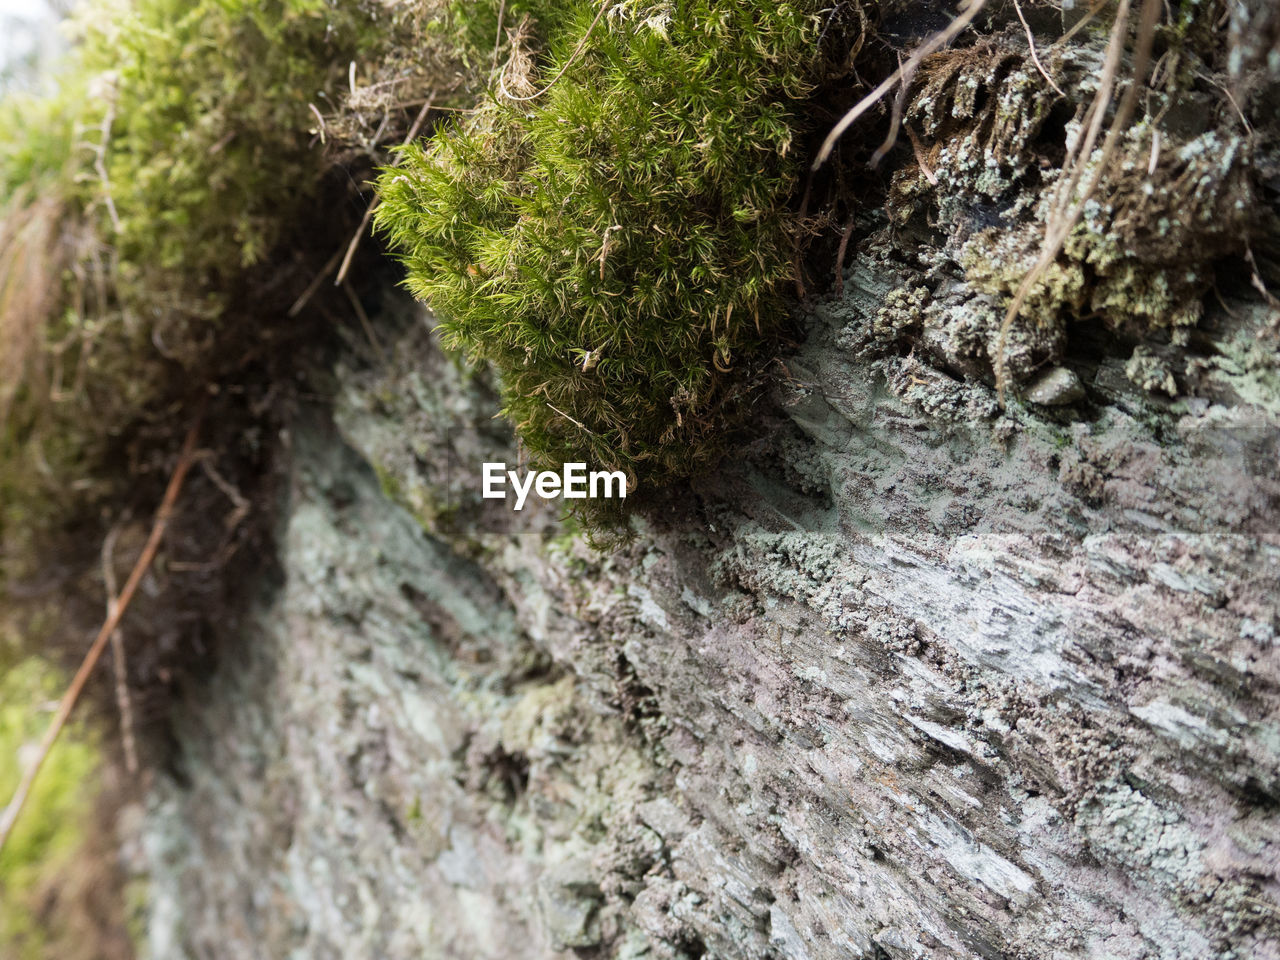 nature, rock - object, moss, no people, day, outdoors, beauty in nature, growth, close-up, tree trunk, forest